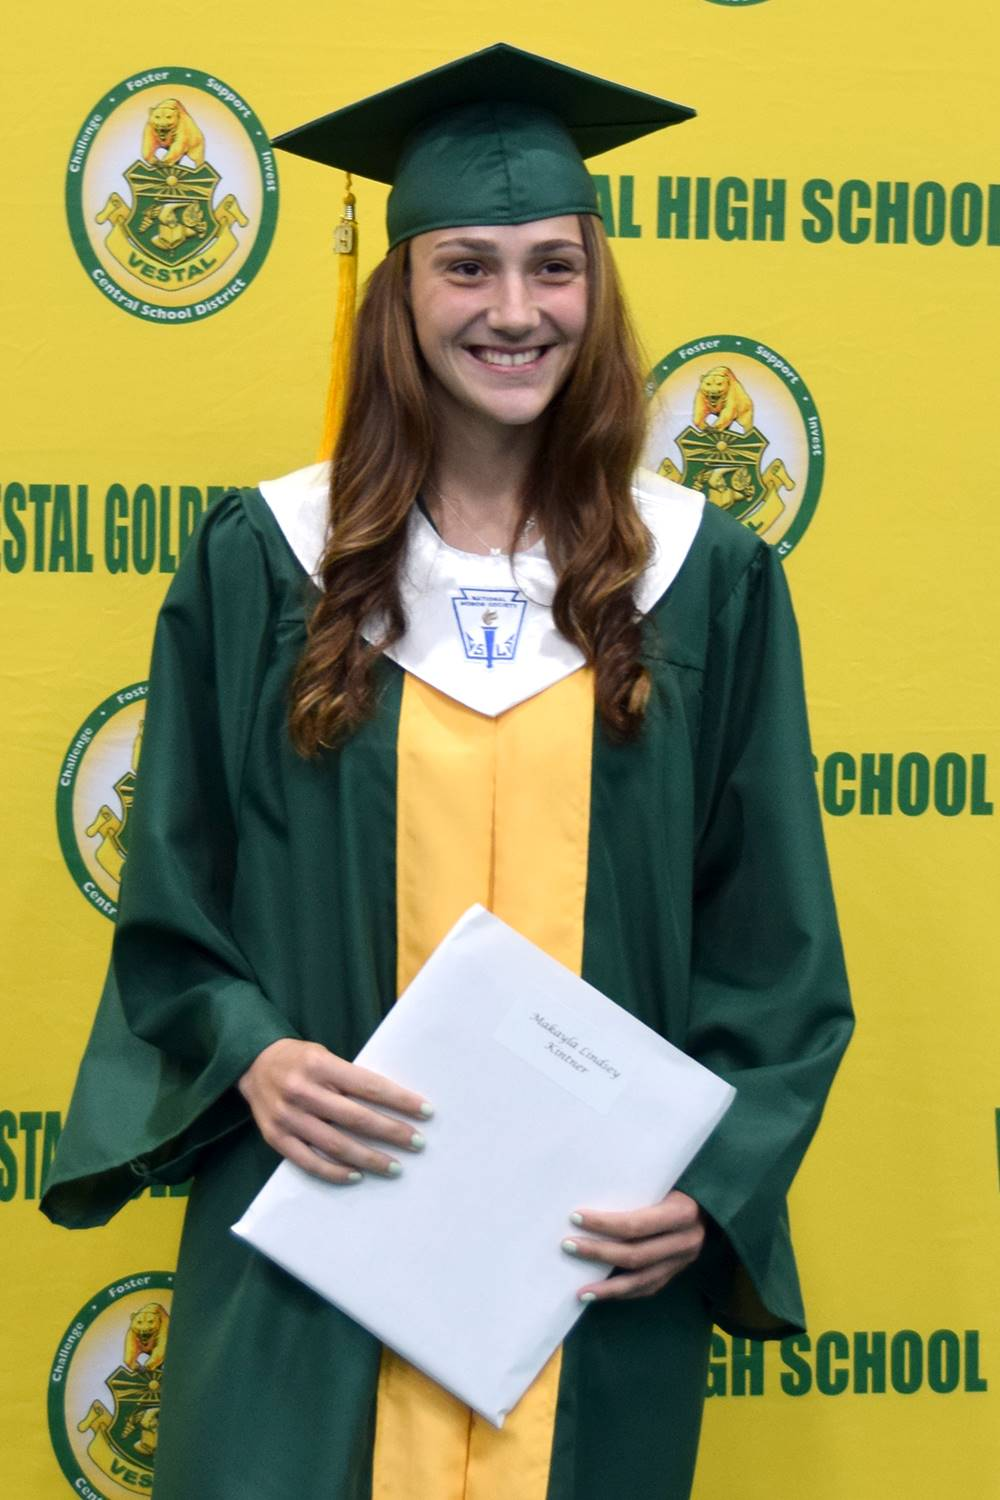 A Vestal High School graduate stands in front of the yellow and green wall holding her diploma durin